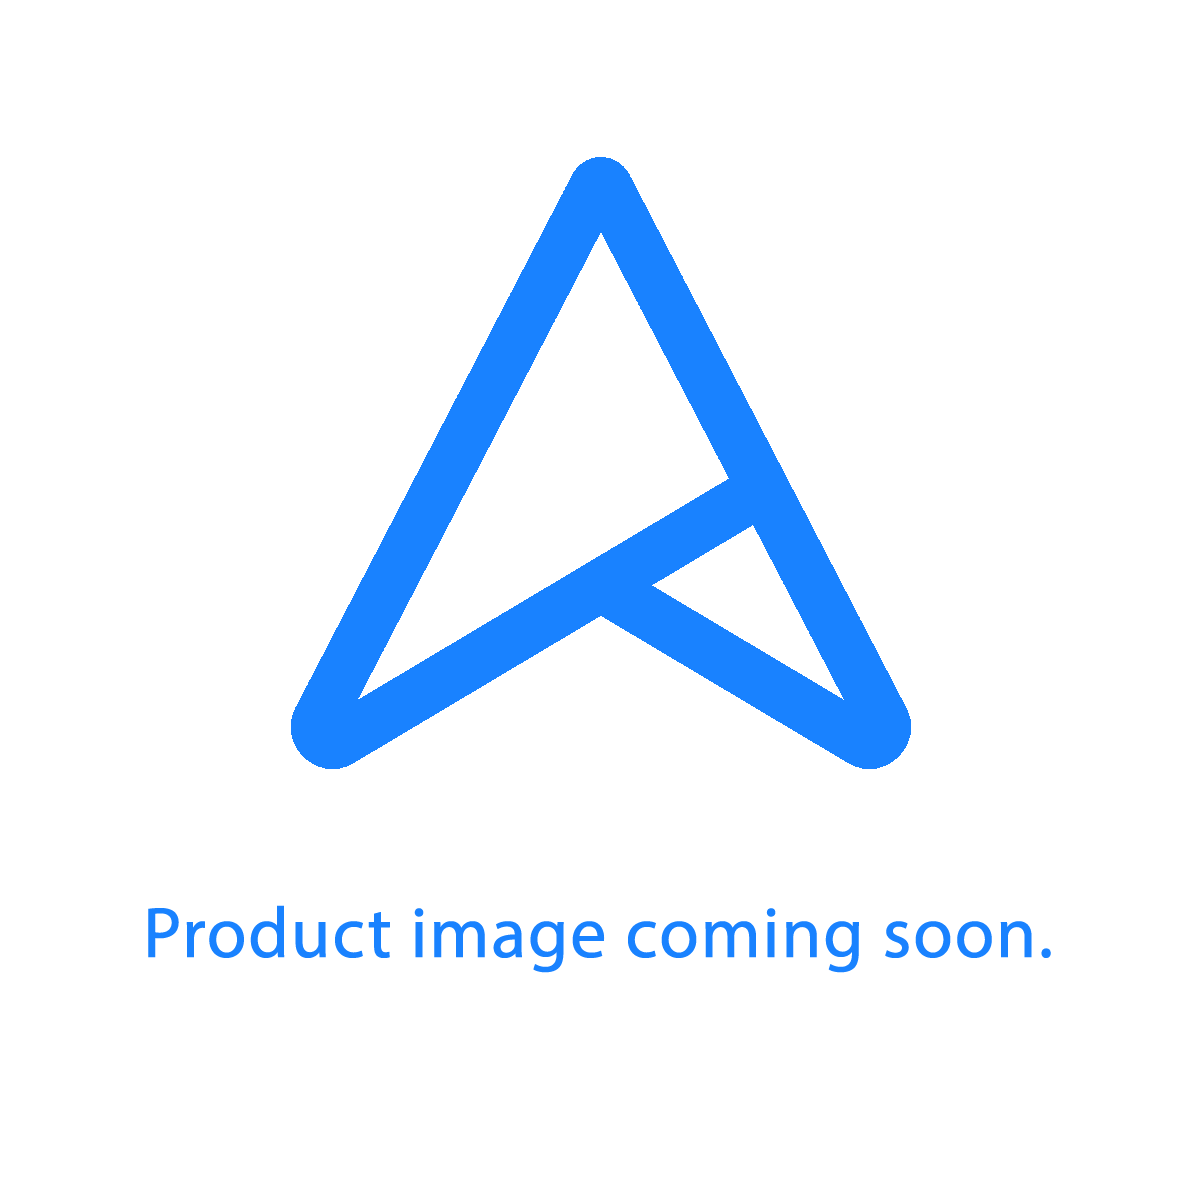 ASUS Premium Care - Notebook International Warranty (1 Year Standard + 1 Year Extension)